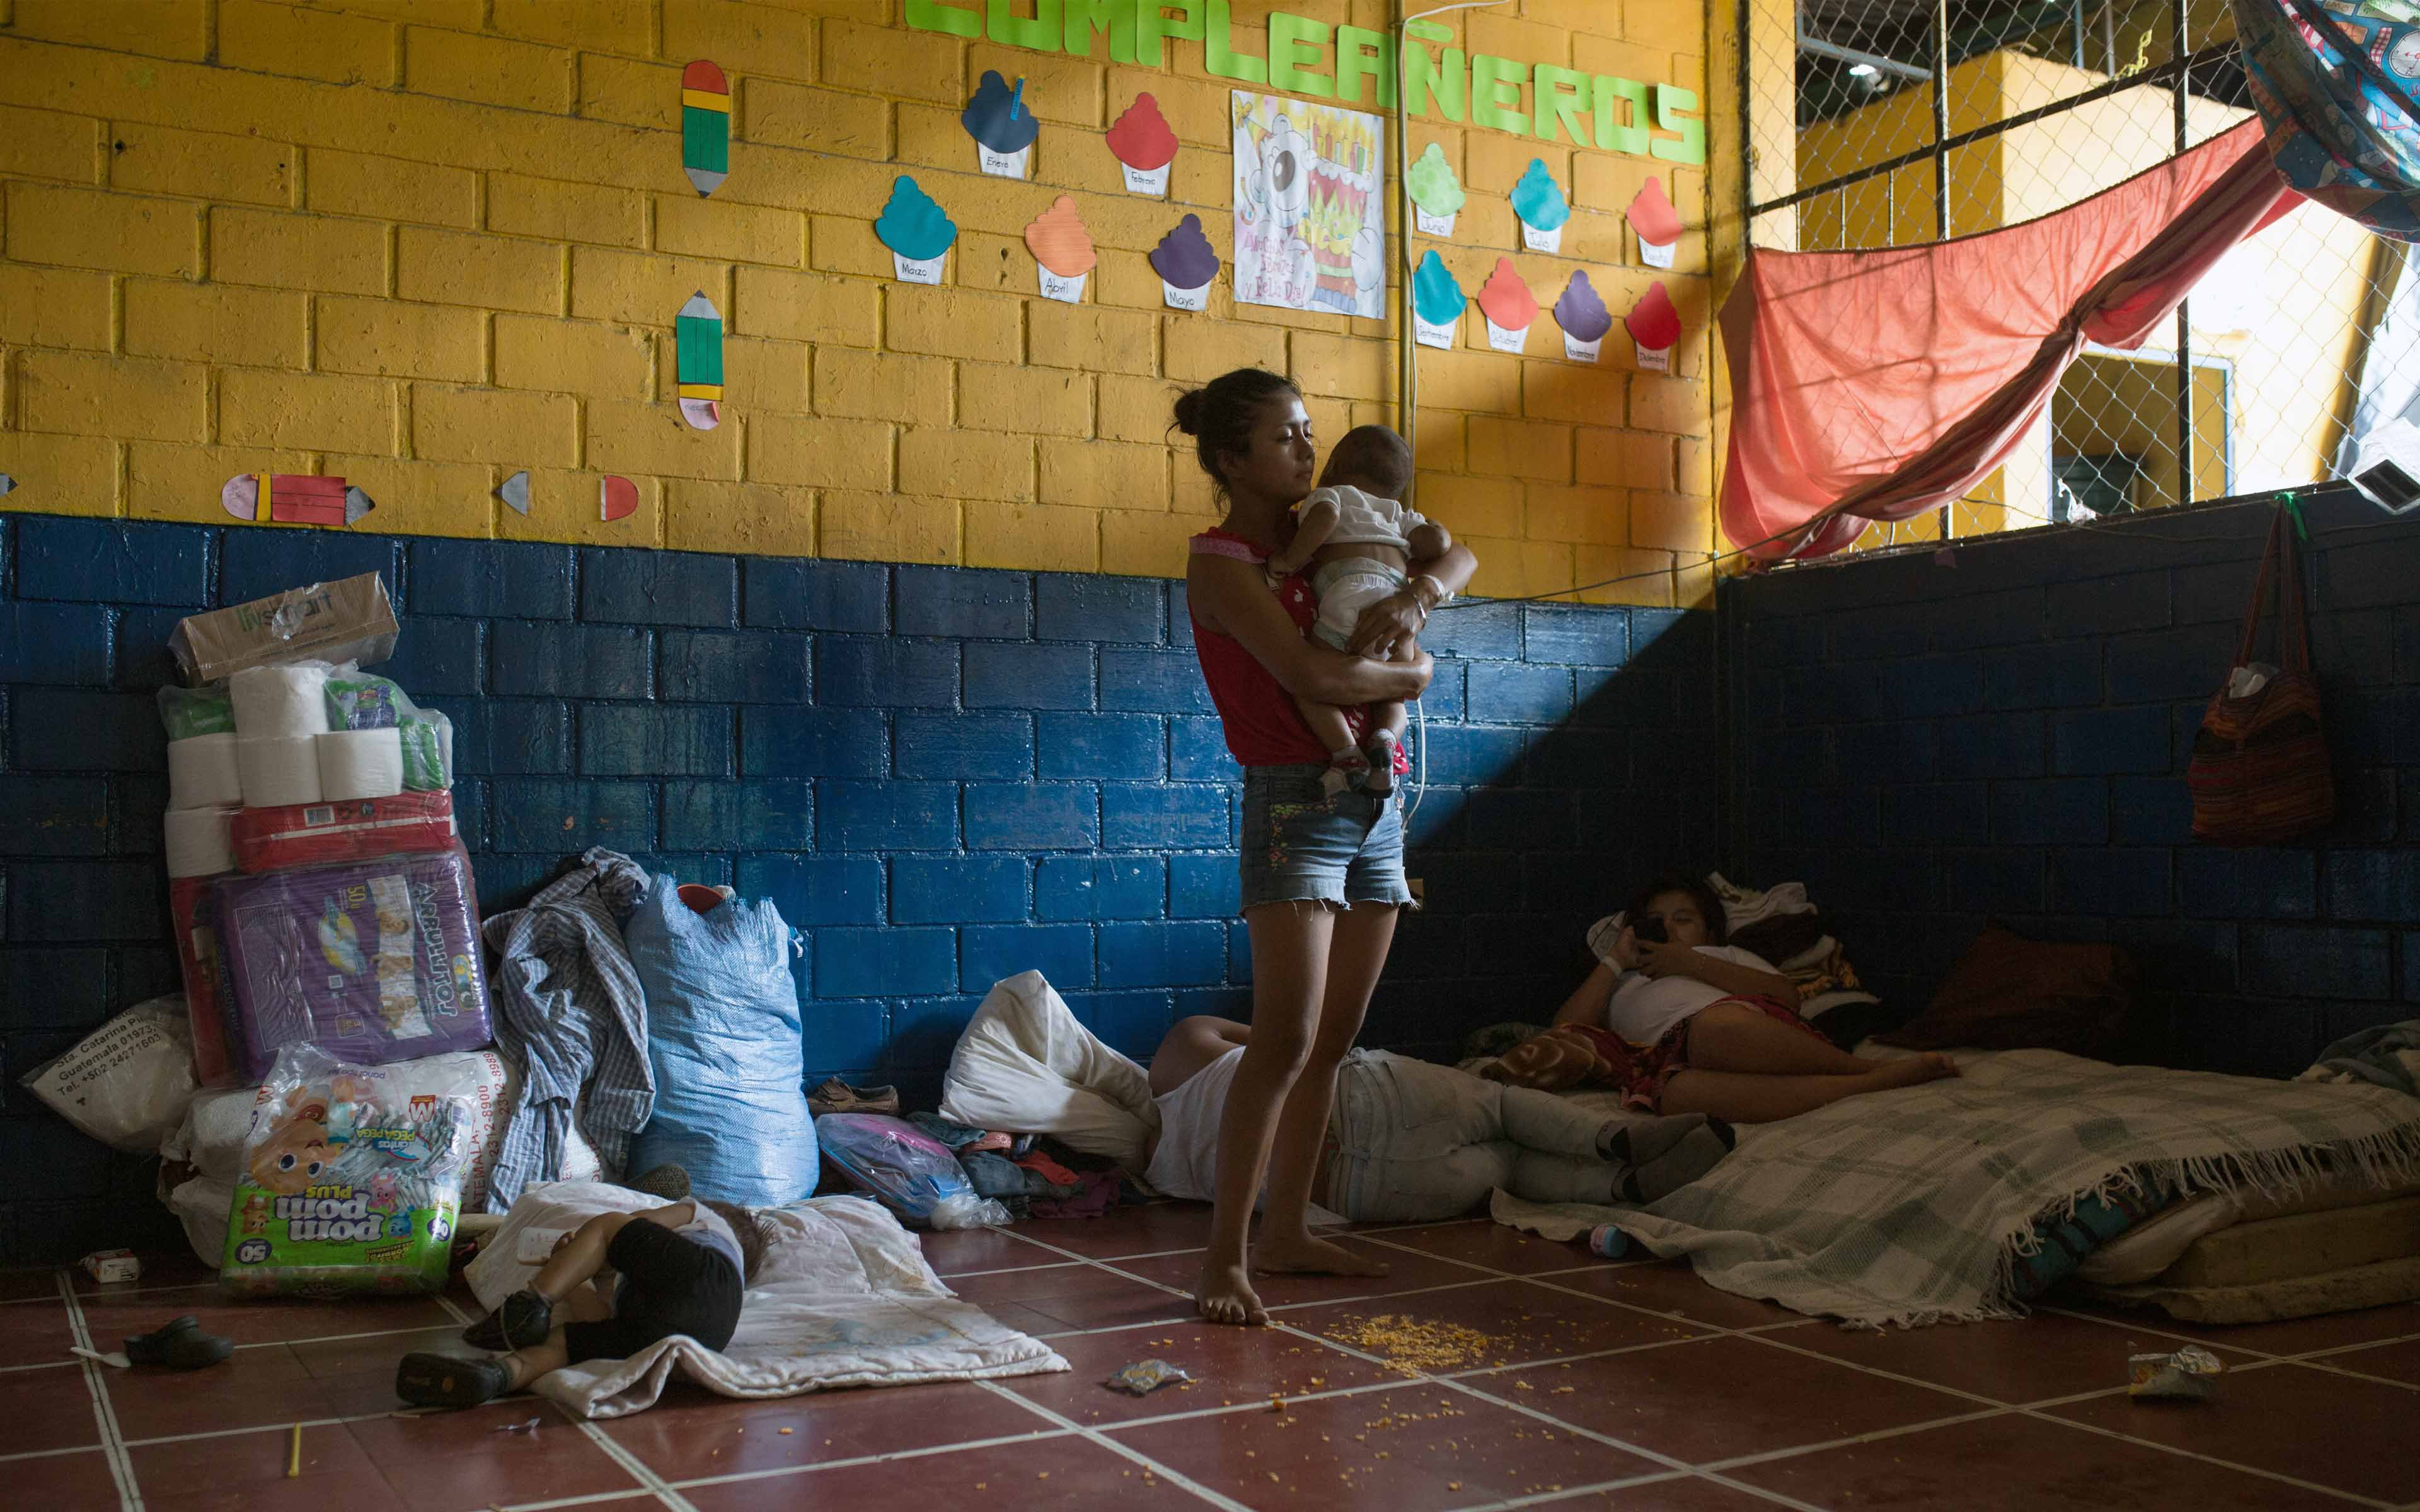 A family from La Reina, a community on the southern slope of the Fuego volcano, now lives in the Murray D. Lincoln School in Escuintla. One month after the June eruption of Fuego, 80 people are still living in the school. Oxfam provided hygiene items, water filters, and a gas stove to the school to support the people displaced by the eruption.